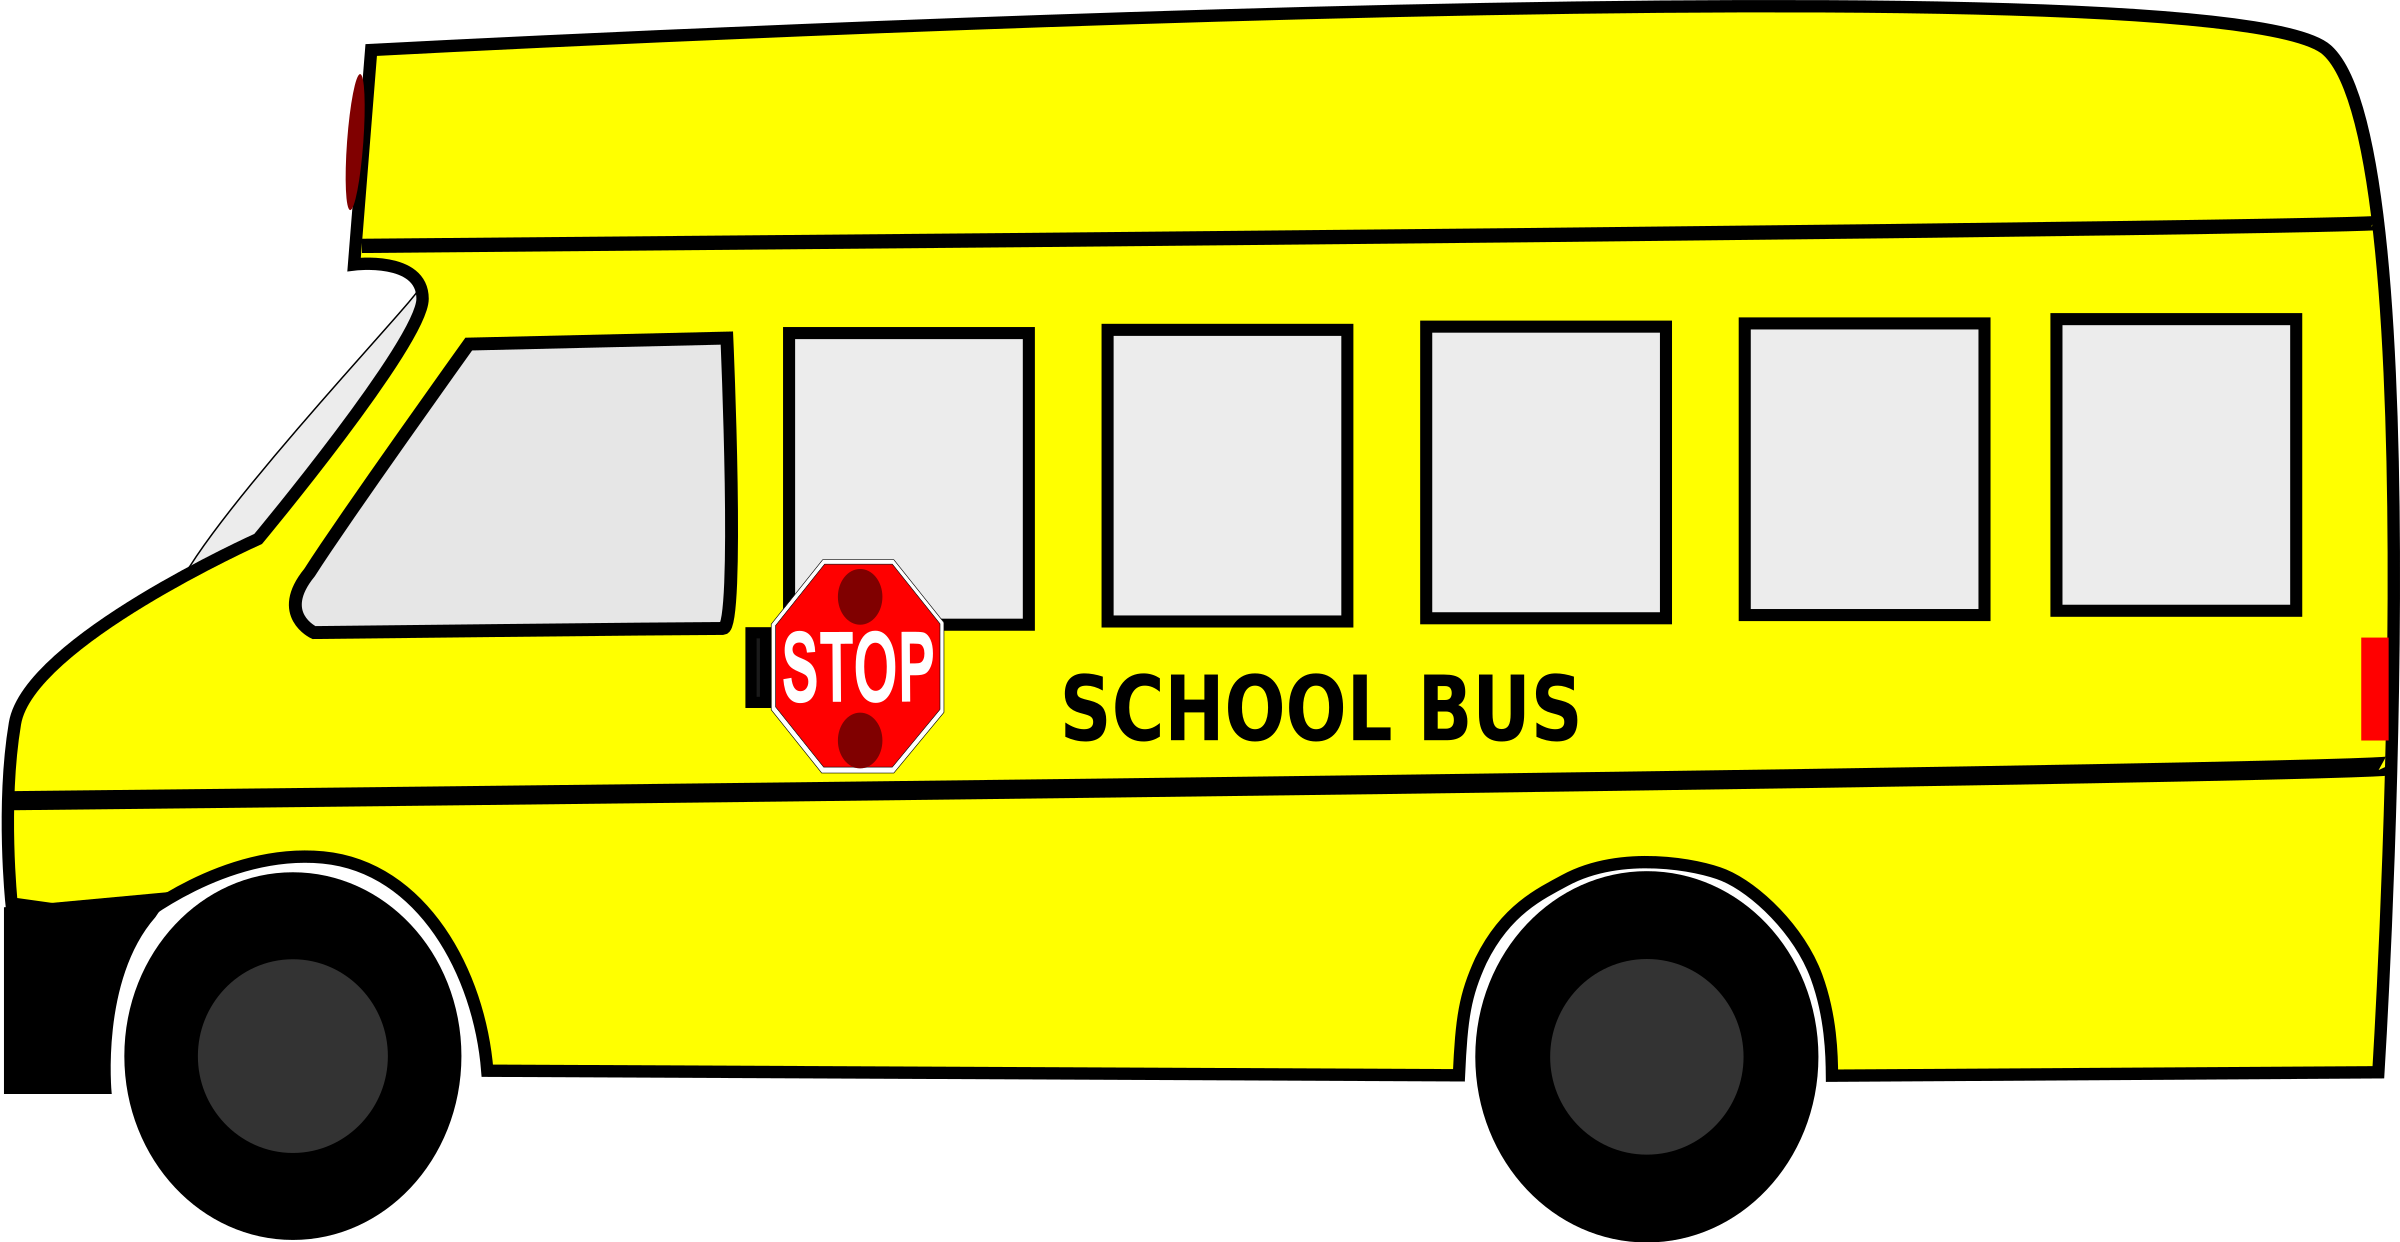 School Bus by schoolfreeware